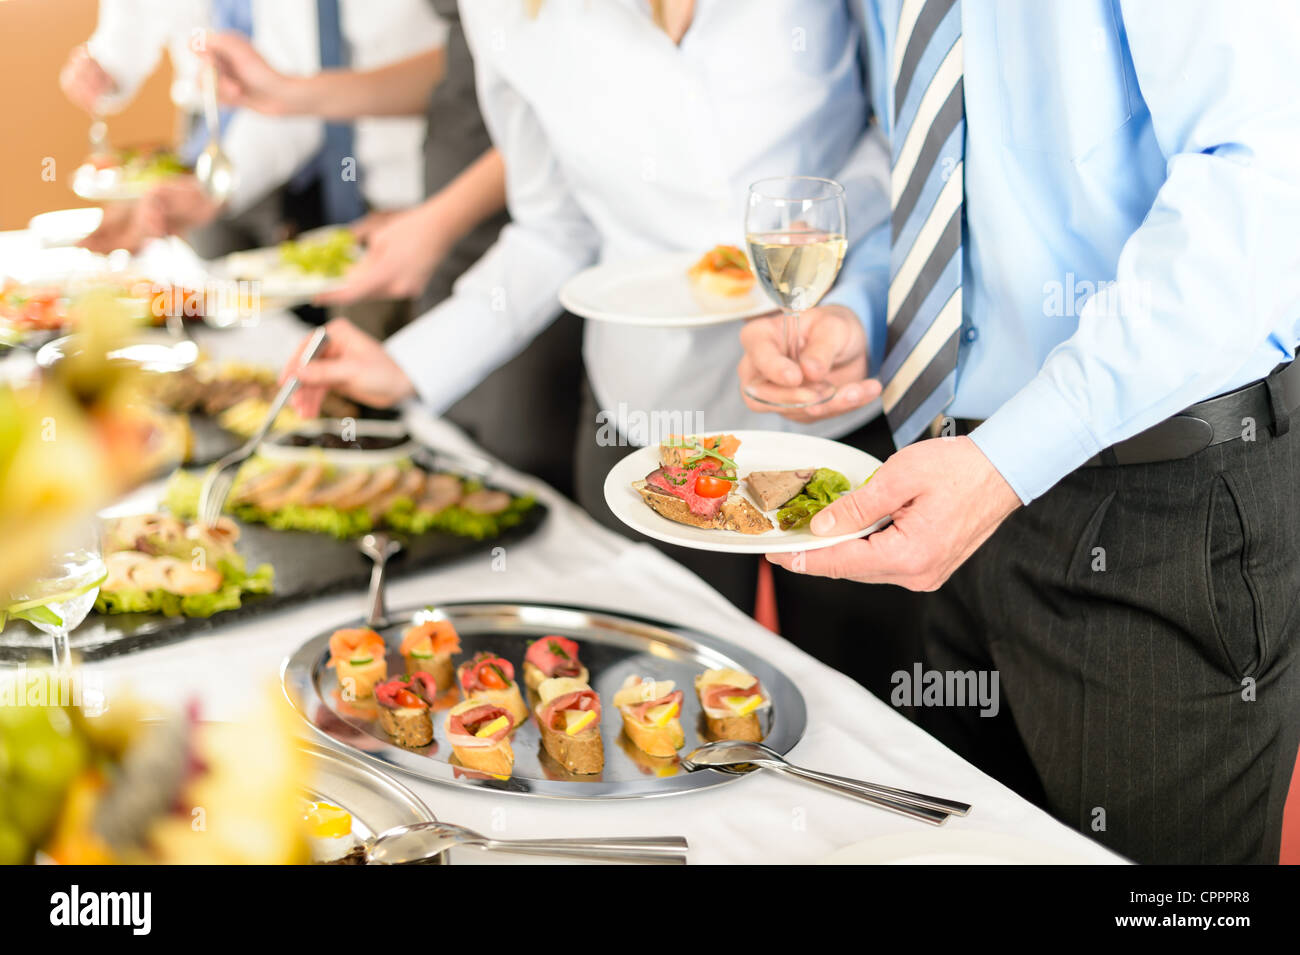 Catering at business company event people choosing buffet food appetizers - Stock Image